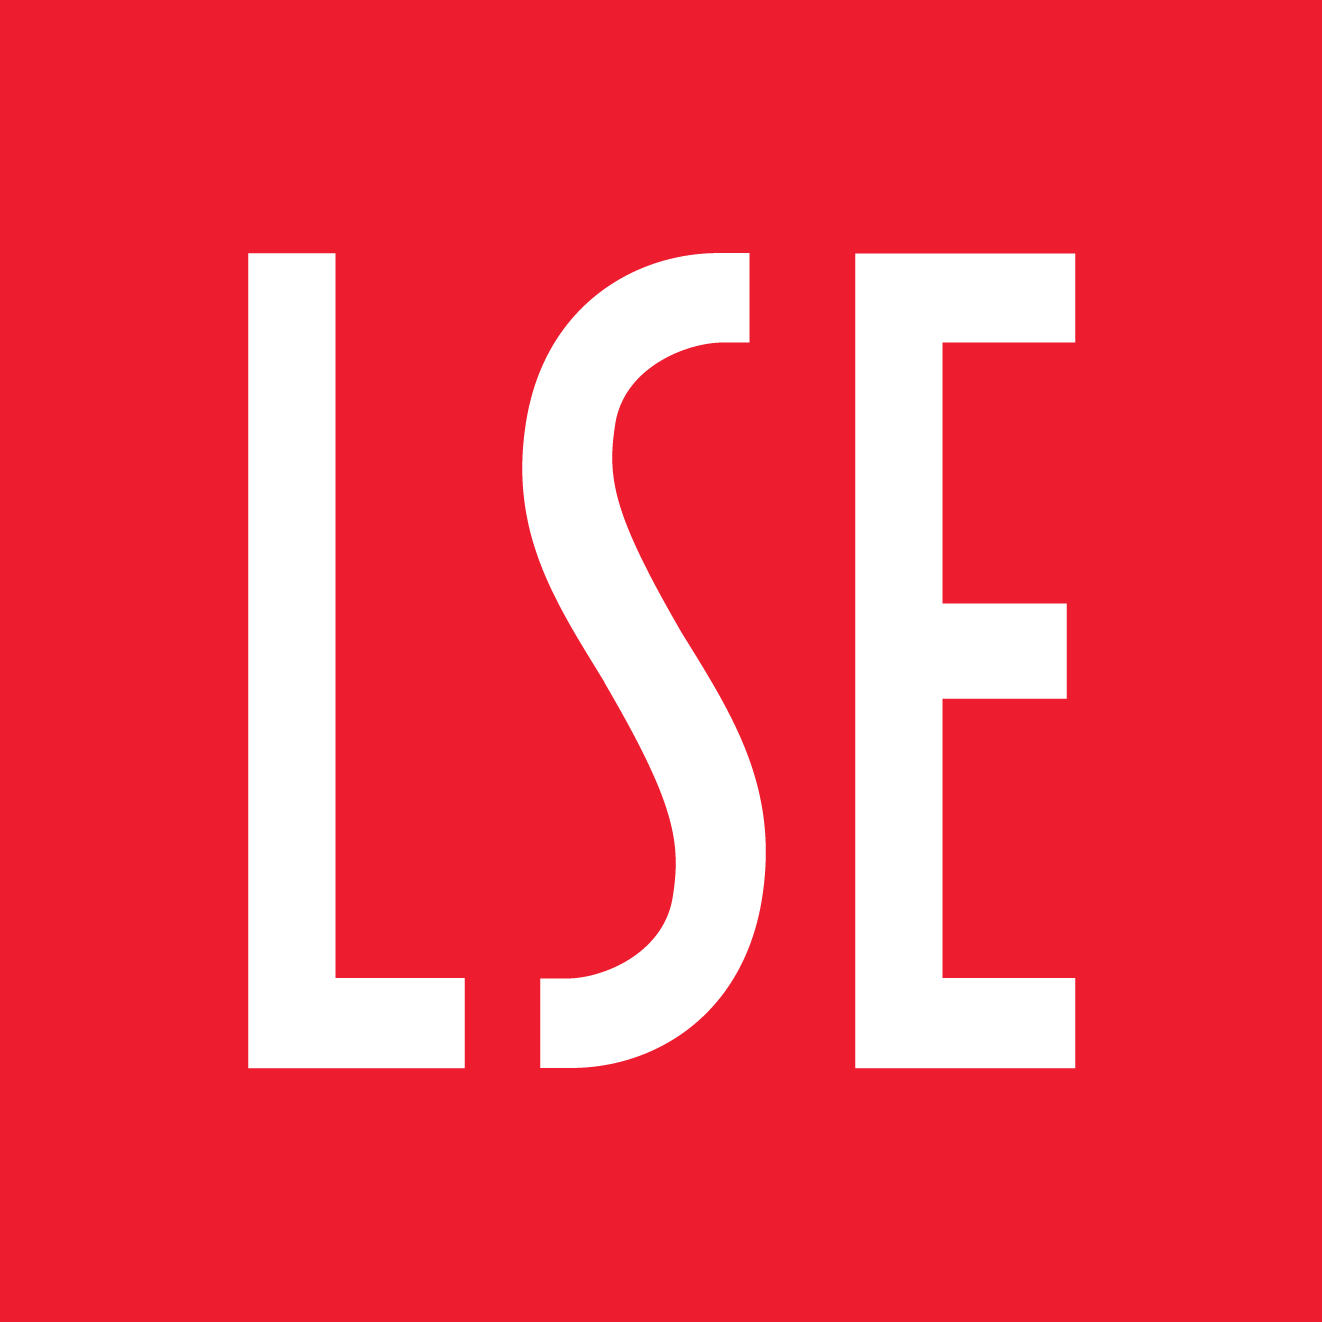 london-school-of-economics-and-political-science-lse